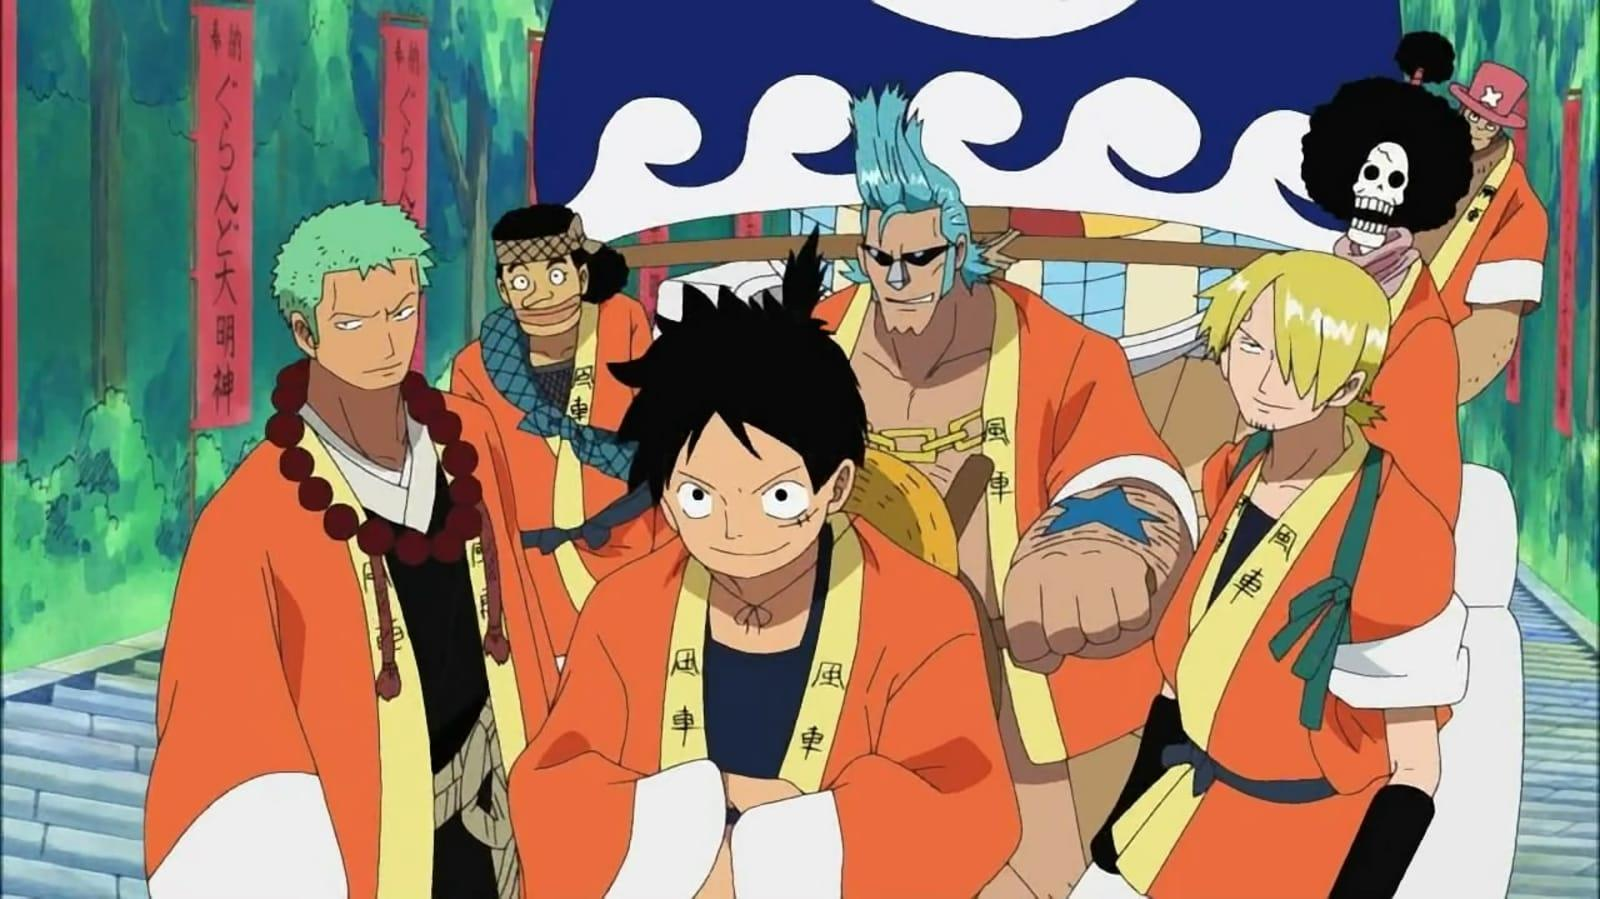 Netflix Is Turning Manga And Anime One Piece Into A Live Action Series Engadget